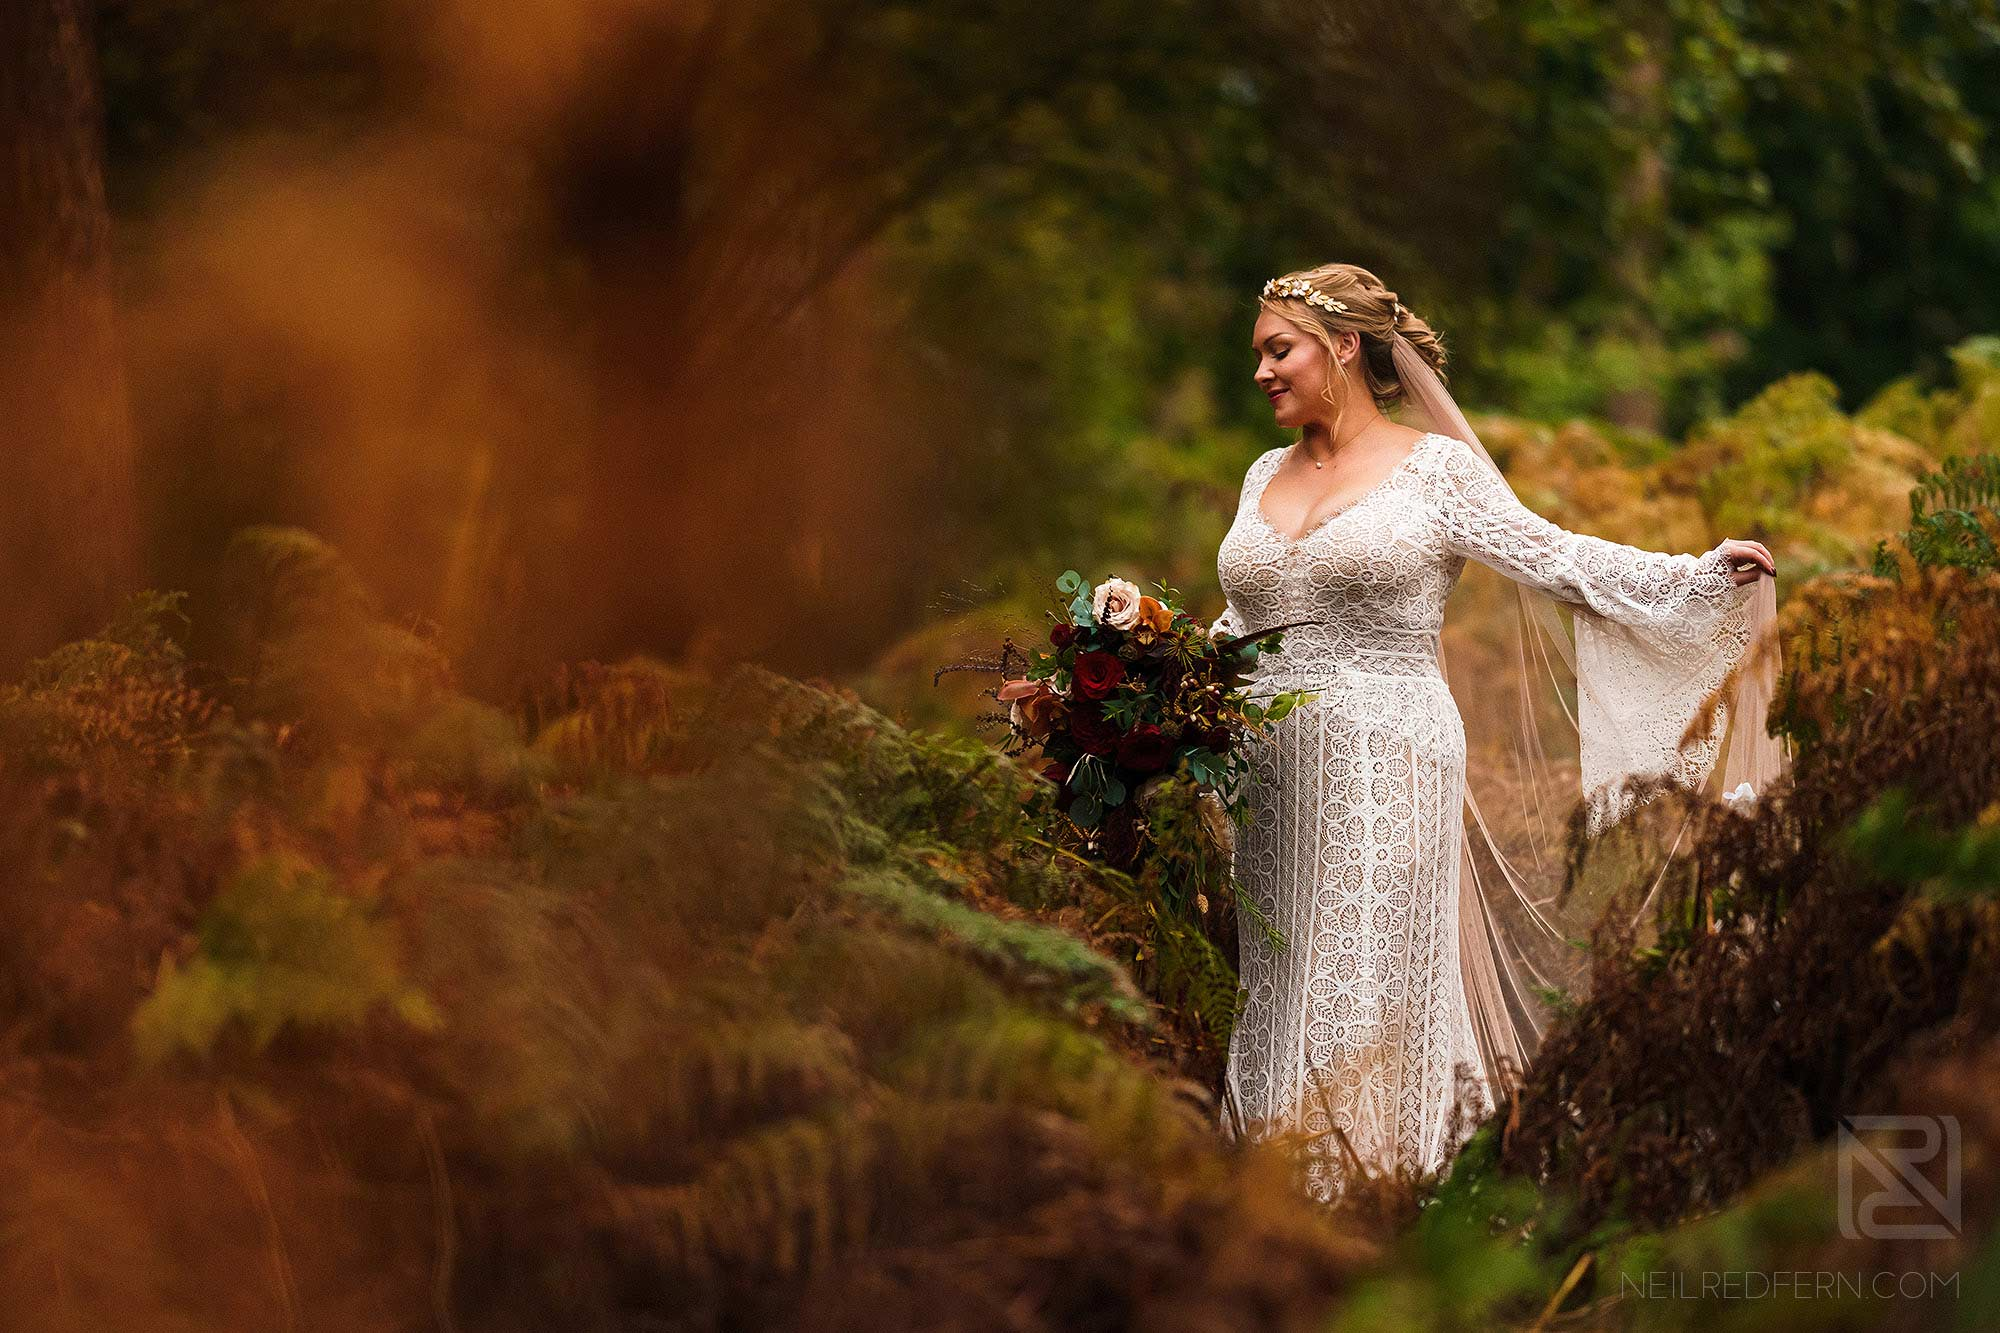 beautiful portrait of bride in forest